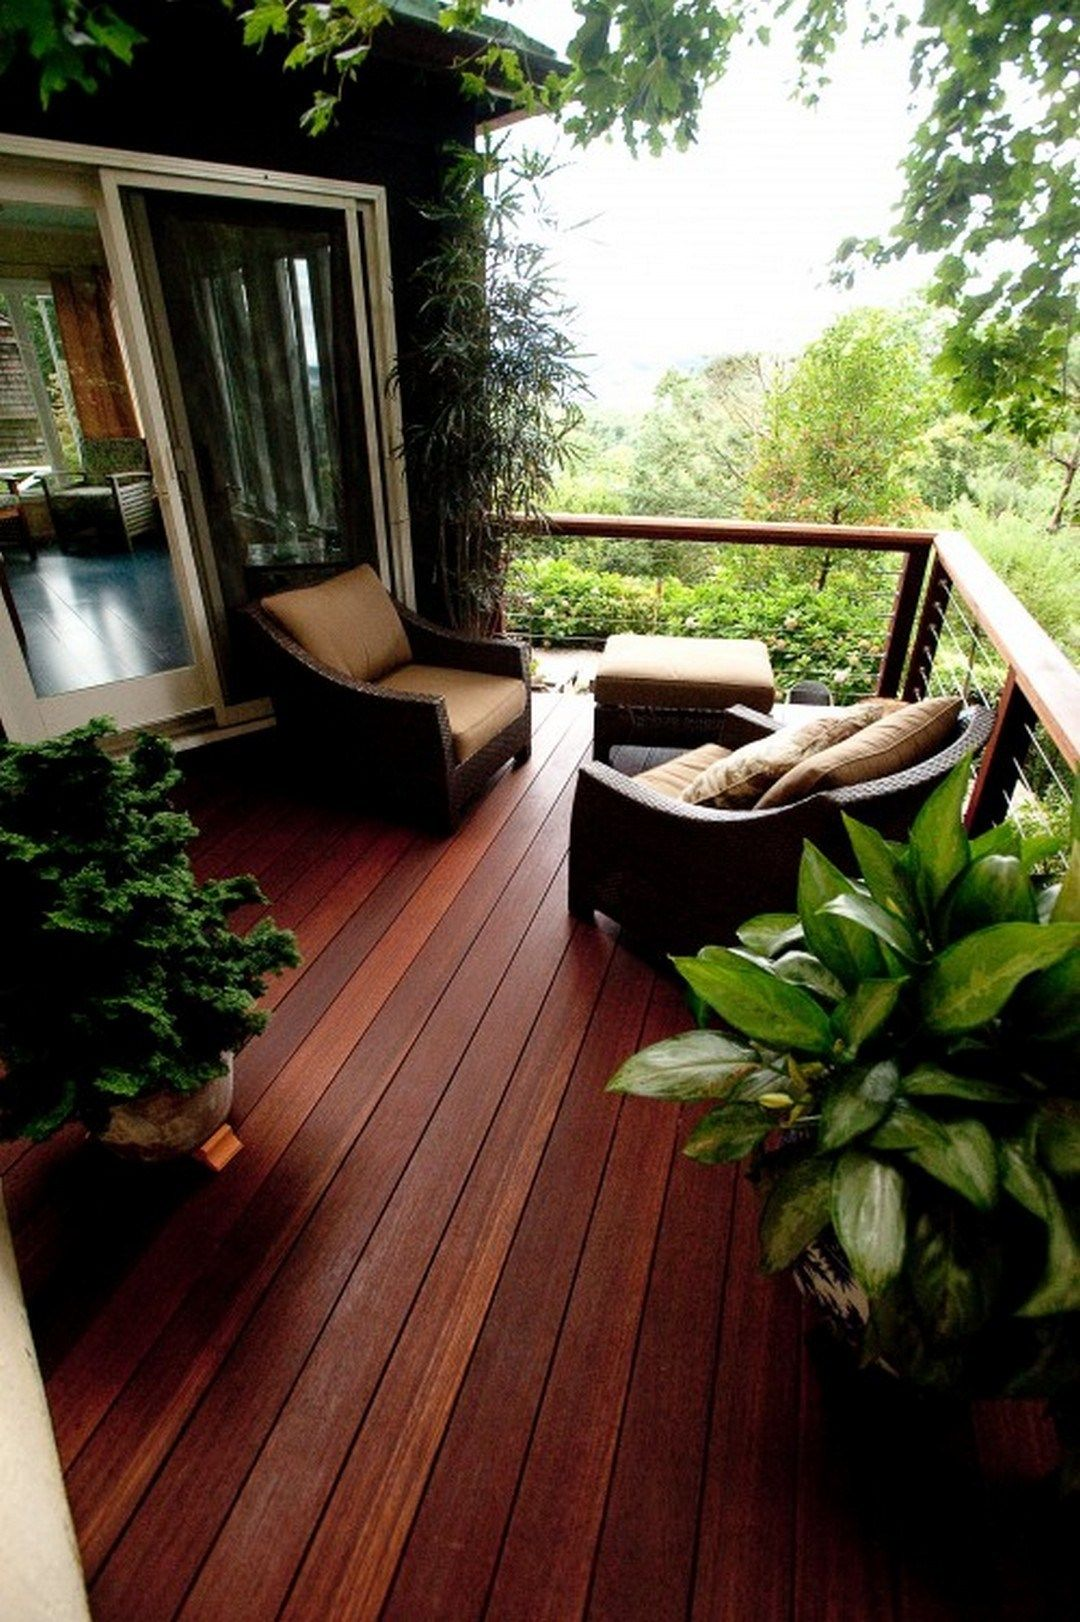 Second Floor Deck With Screened In Porch Design And Stairs With